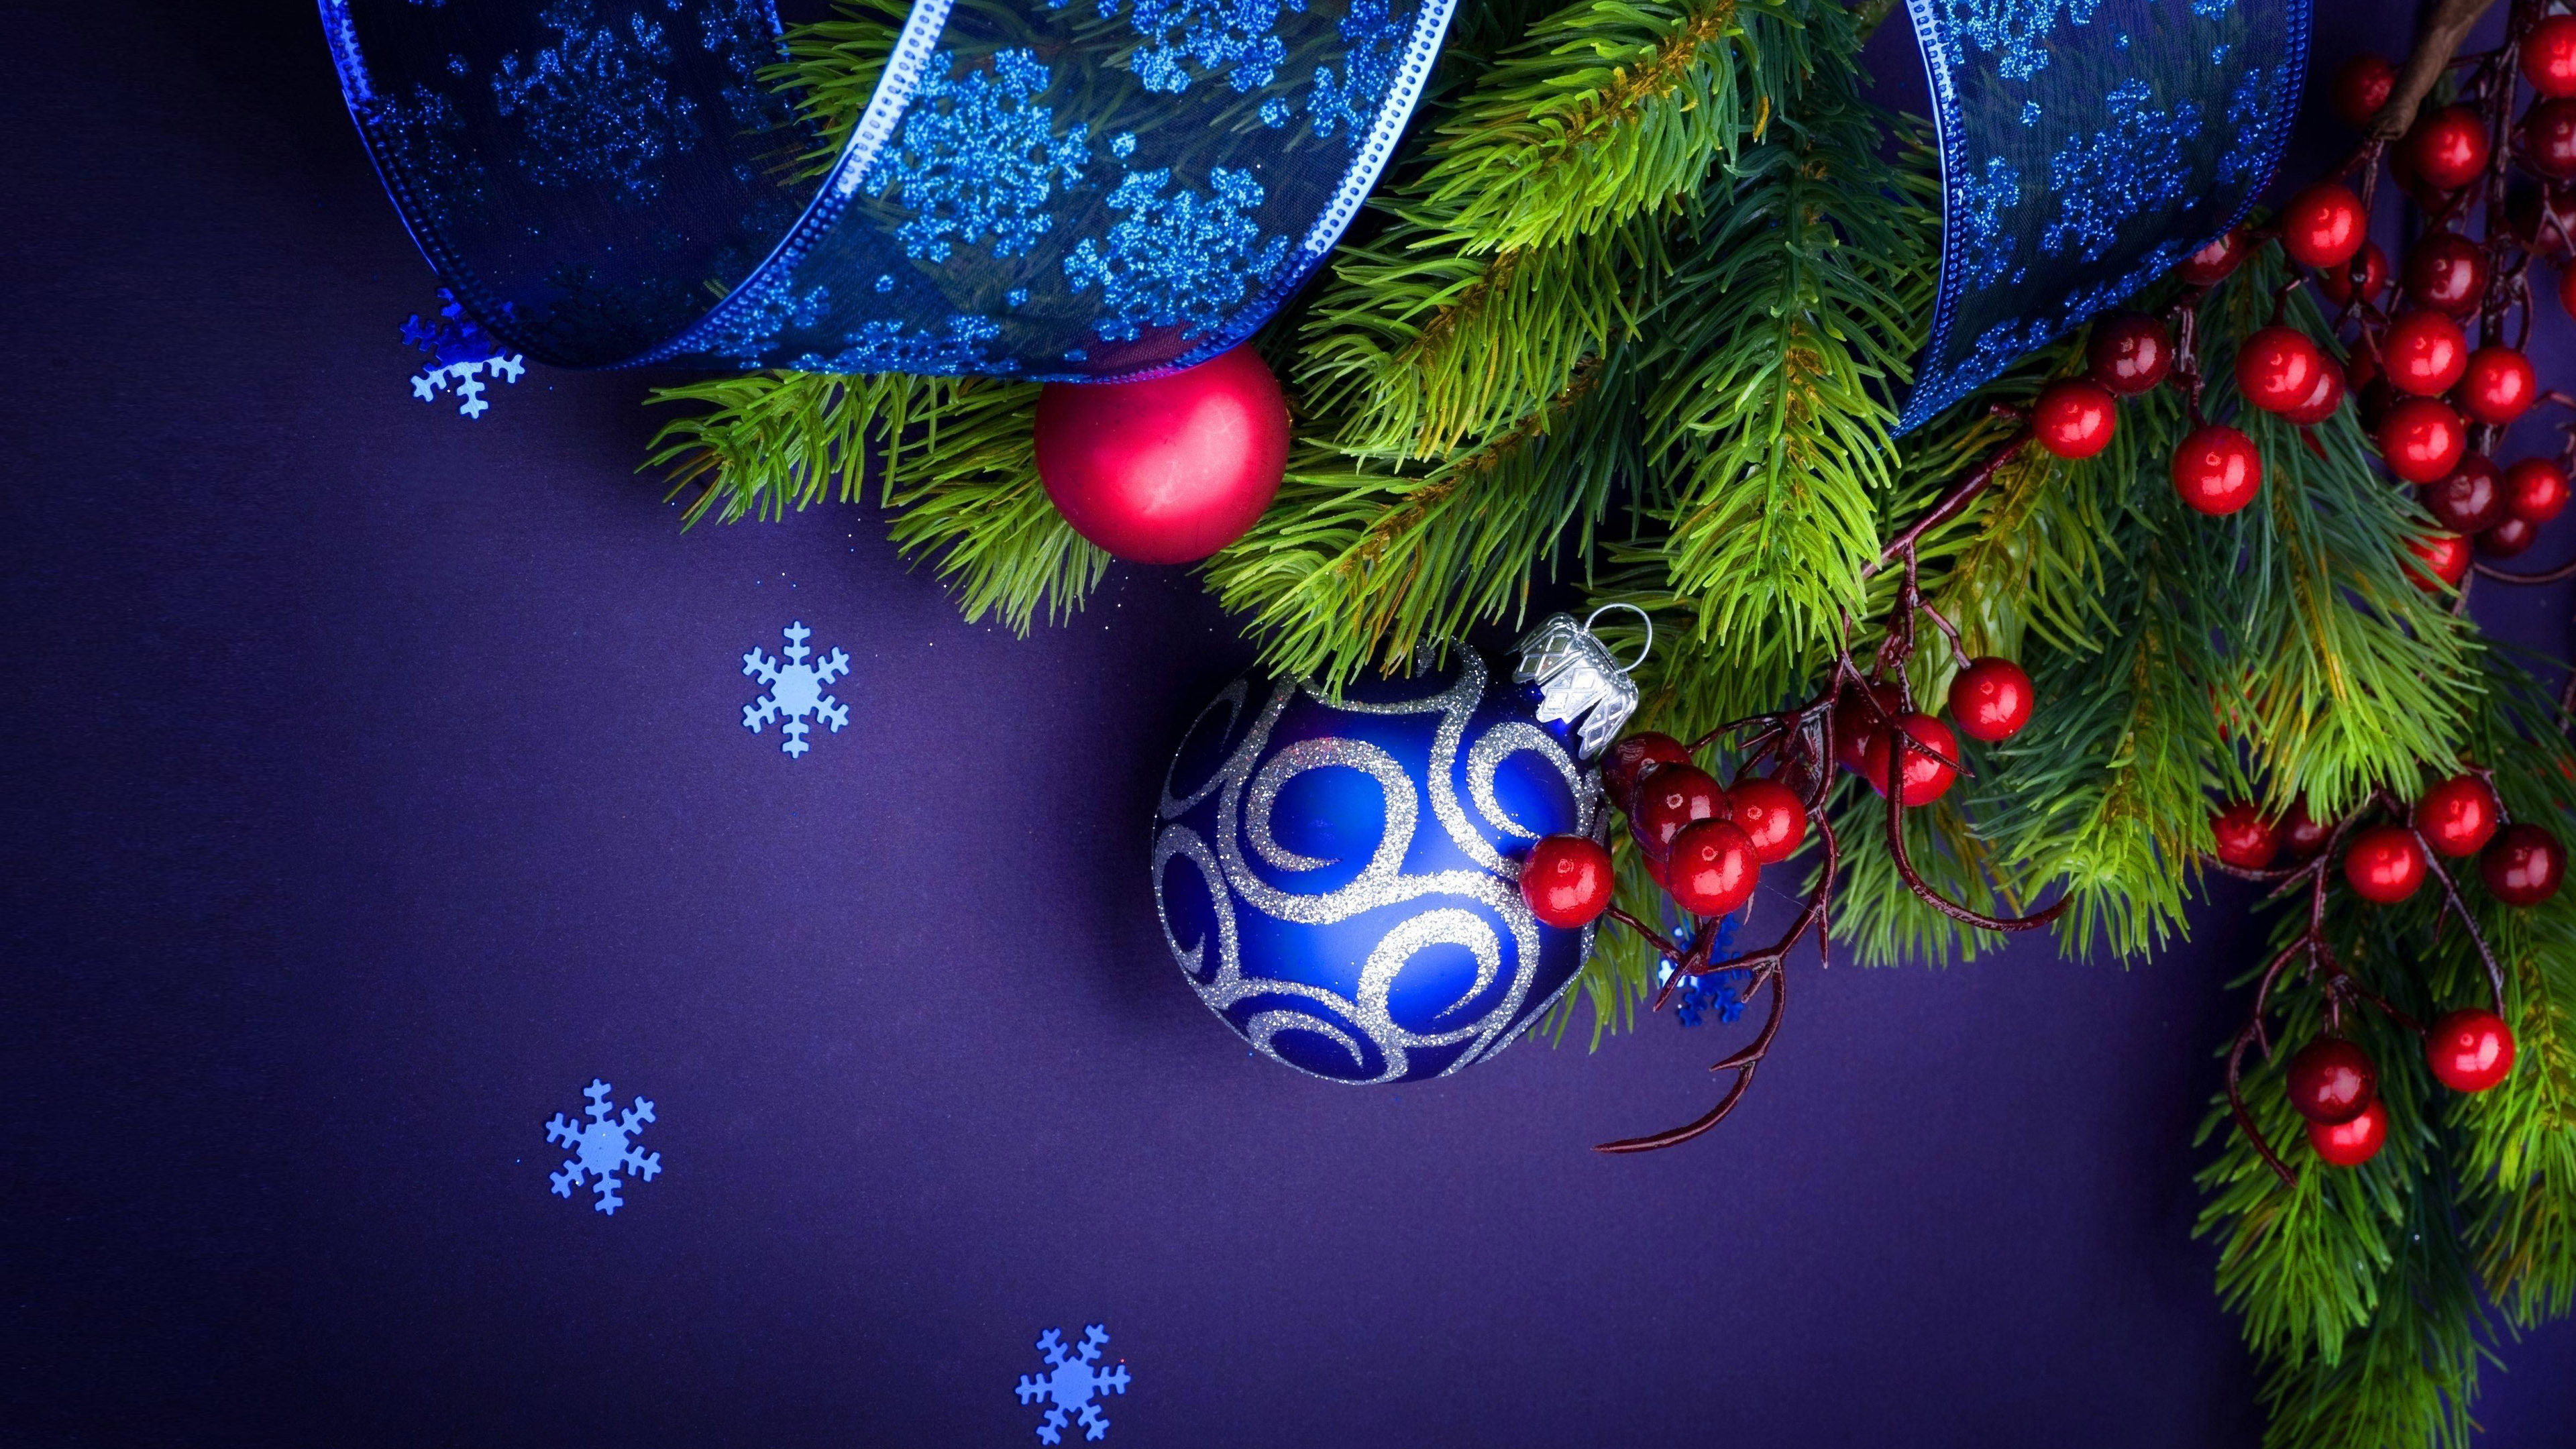 4k christmas ornaments 1543946316 - 4k Christmas Ornaments - holidays wallpapers, hd-wallpapers, christmas wallpapers, celebrations wallpapers, 4k-wallpapers